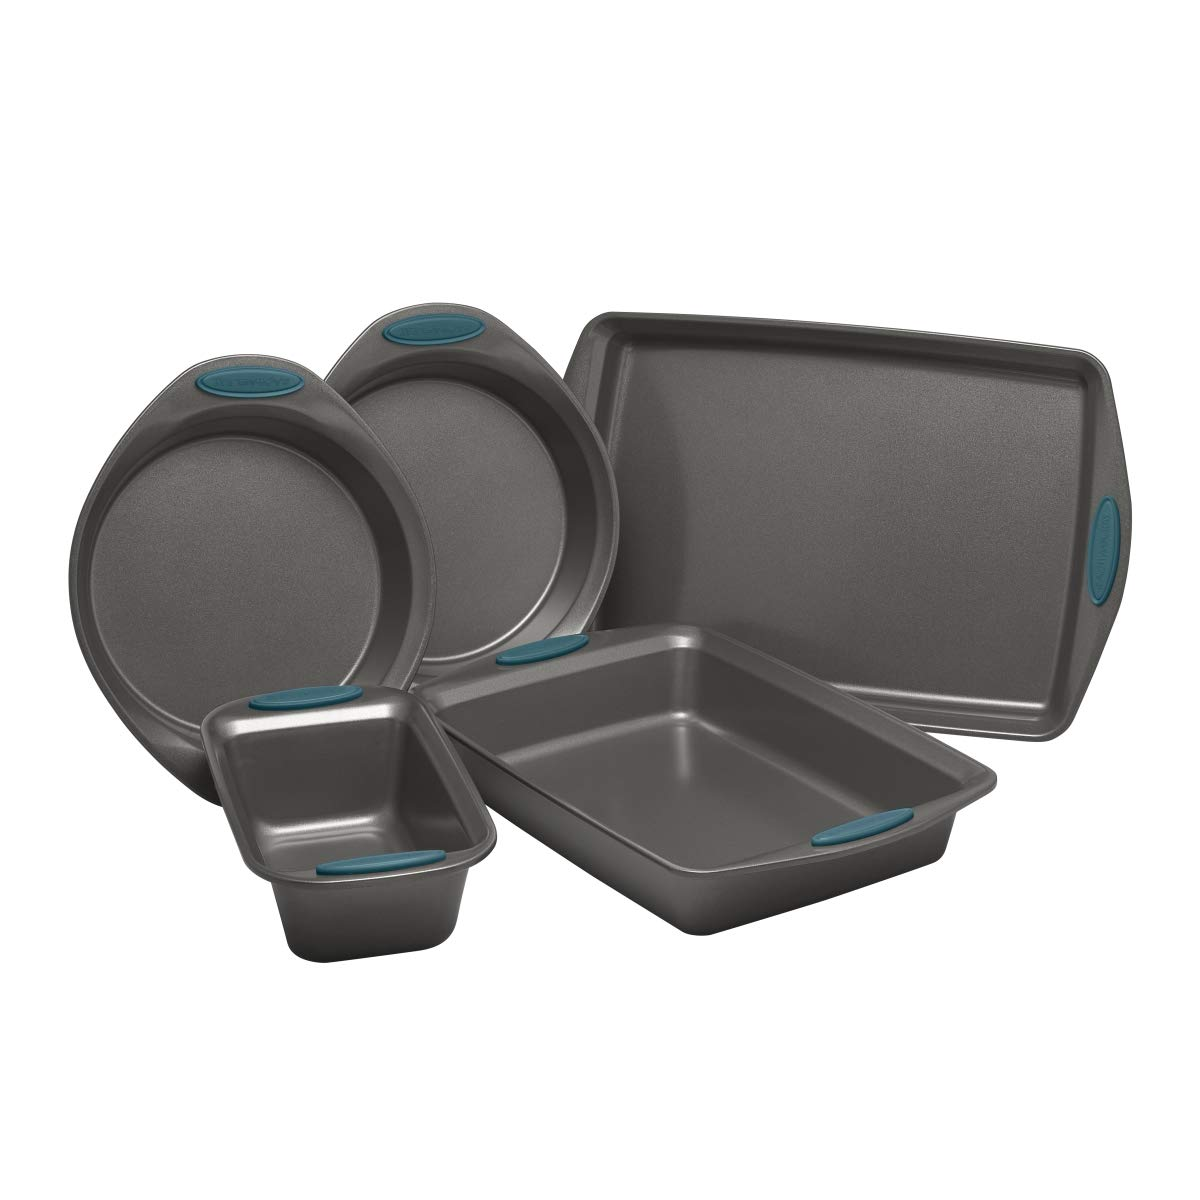 Rachael Ray 47021 Yum-O Nonstick Oven Lovin Bakeware Set with Handles44; Gray & Marine Blue - 5 Piece